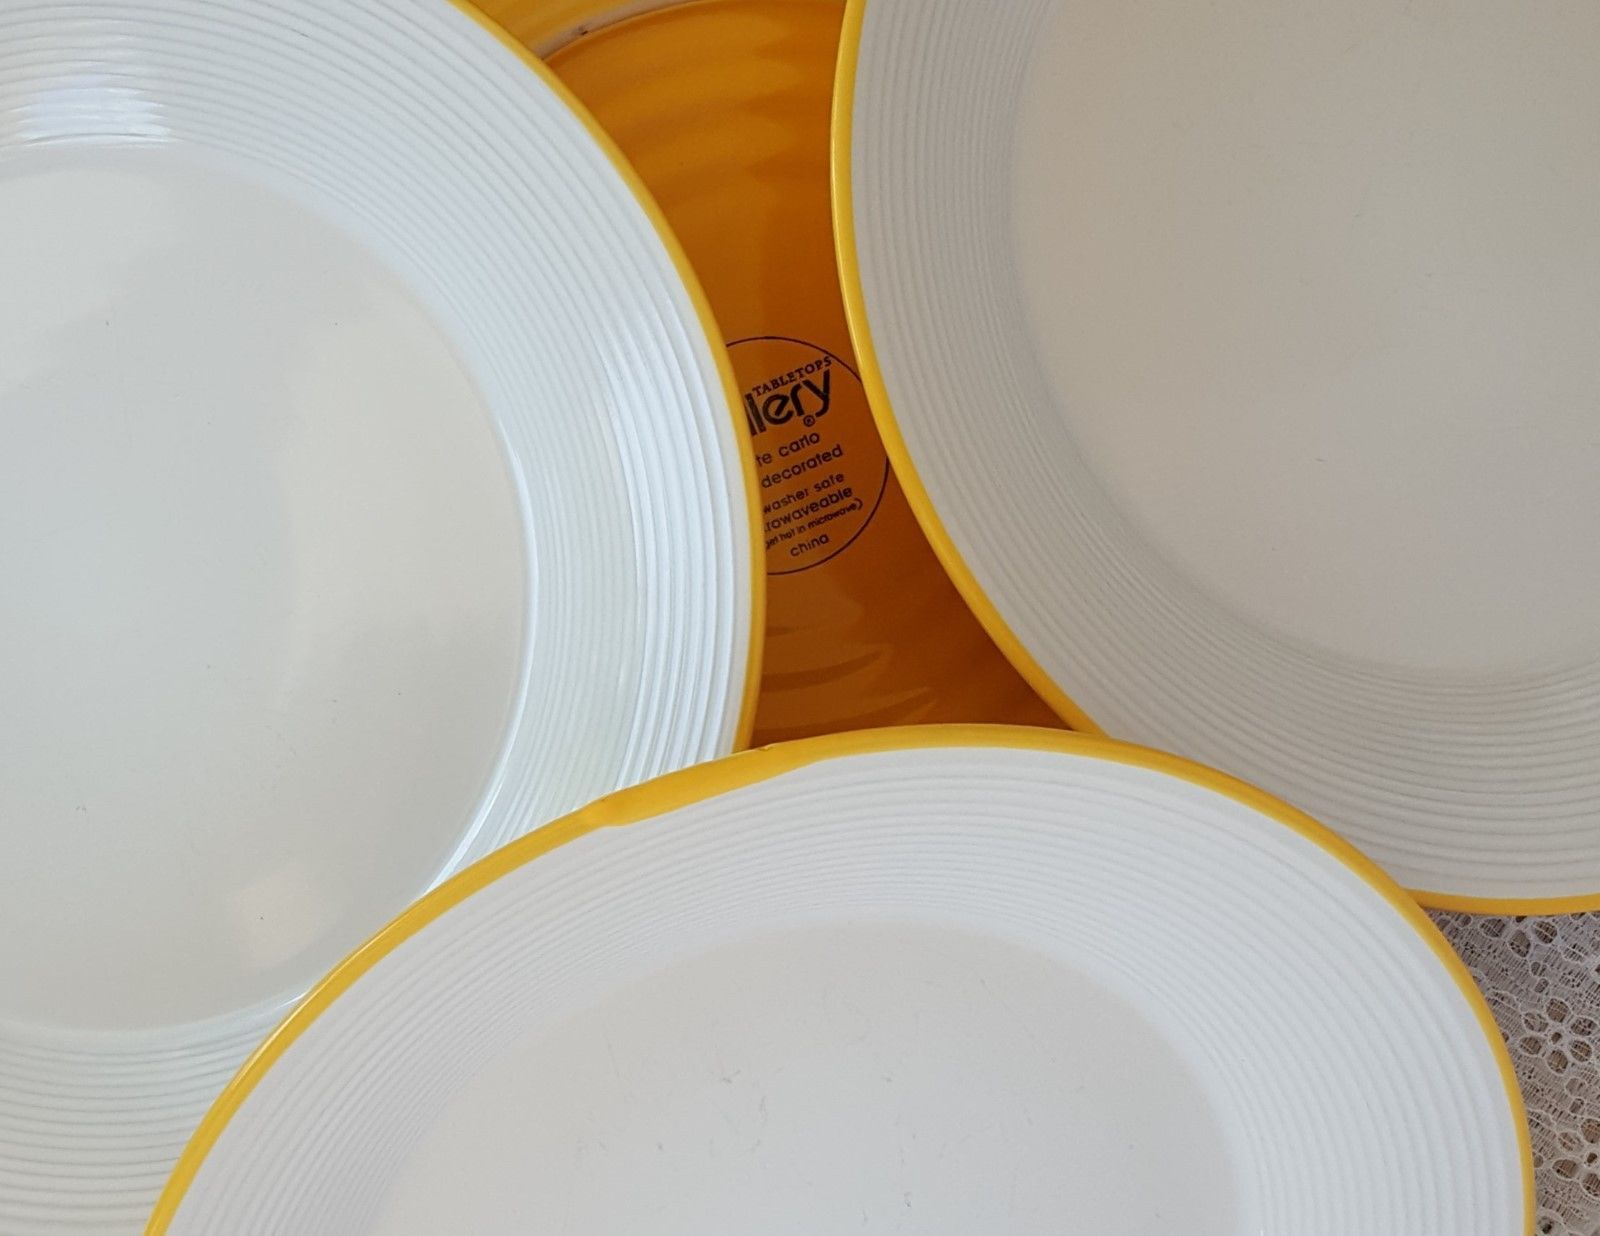 Tabletops Gallery MONTE CARLO Stoneware Dinner Plates Set of 4 Yellow White & Tabletops Gallery MONTE CARLO Stoneware and similar items